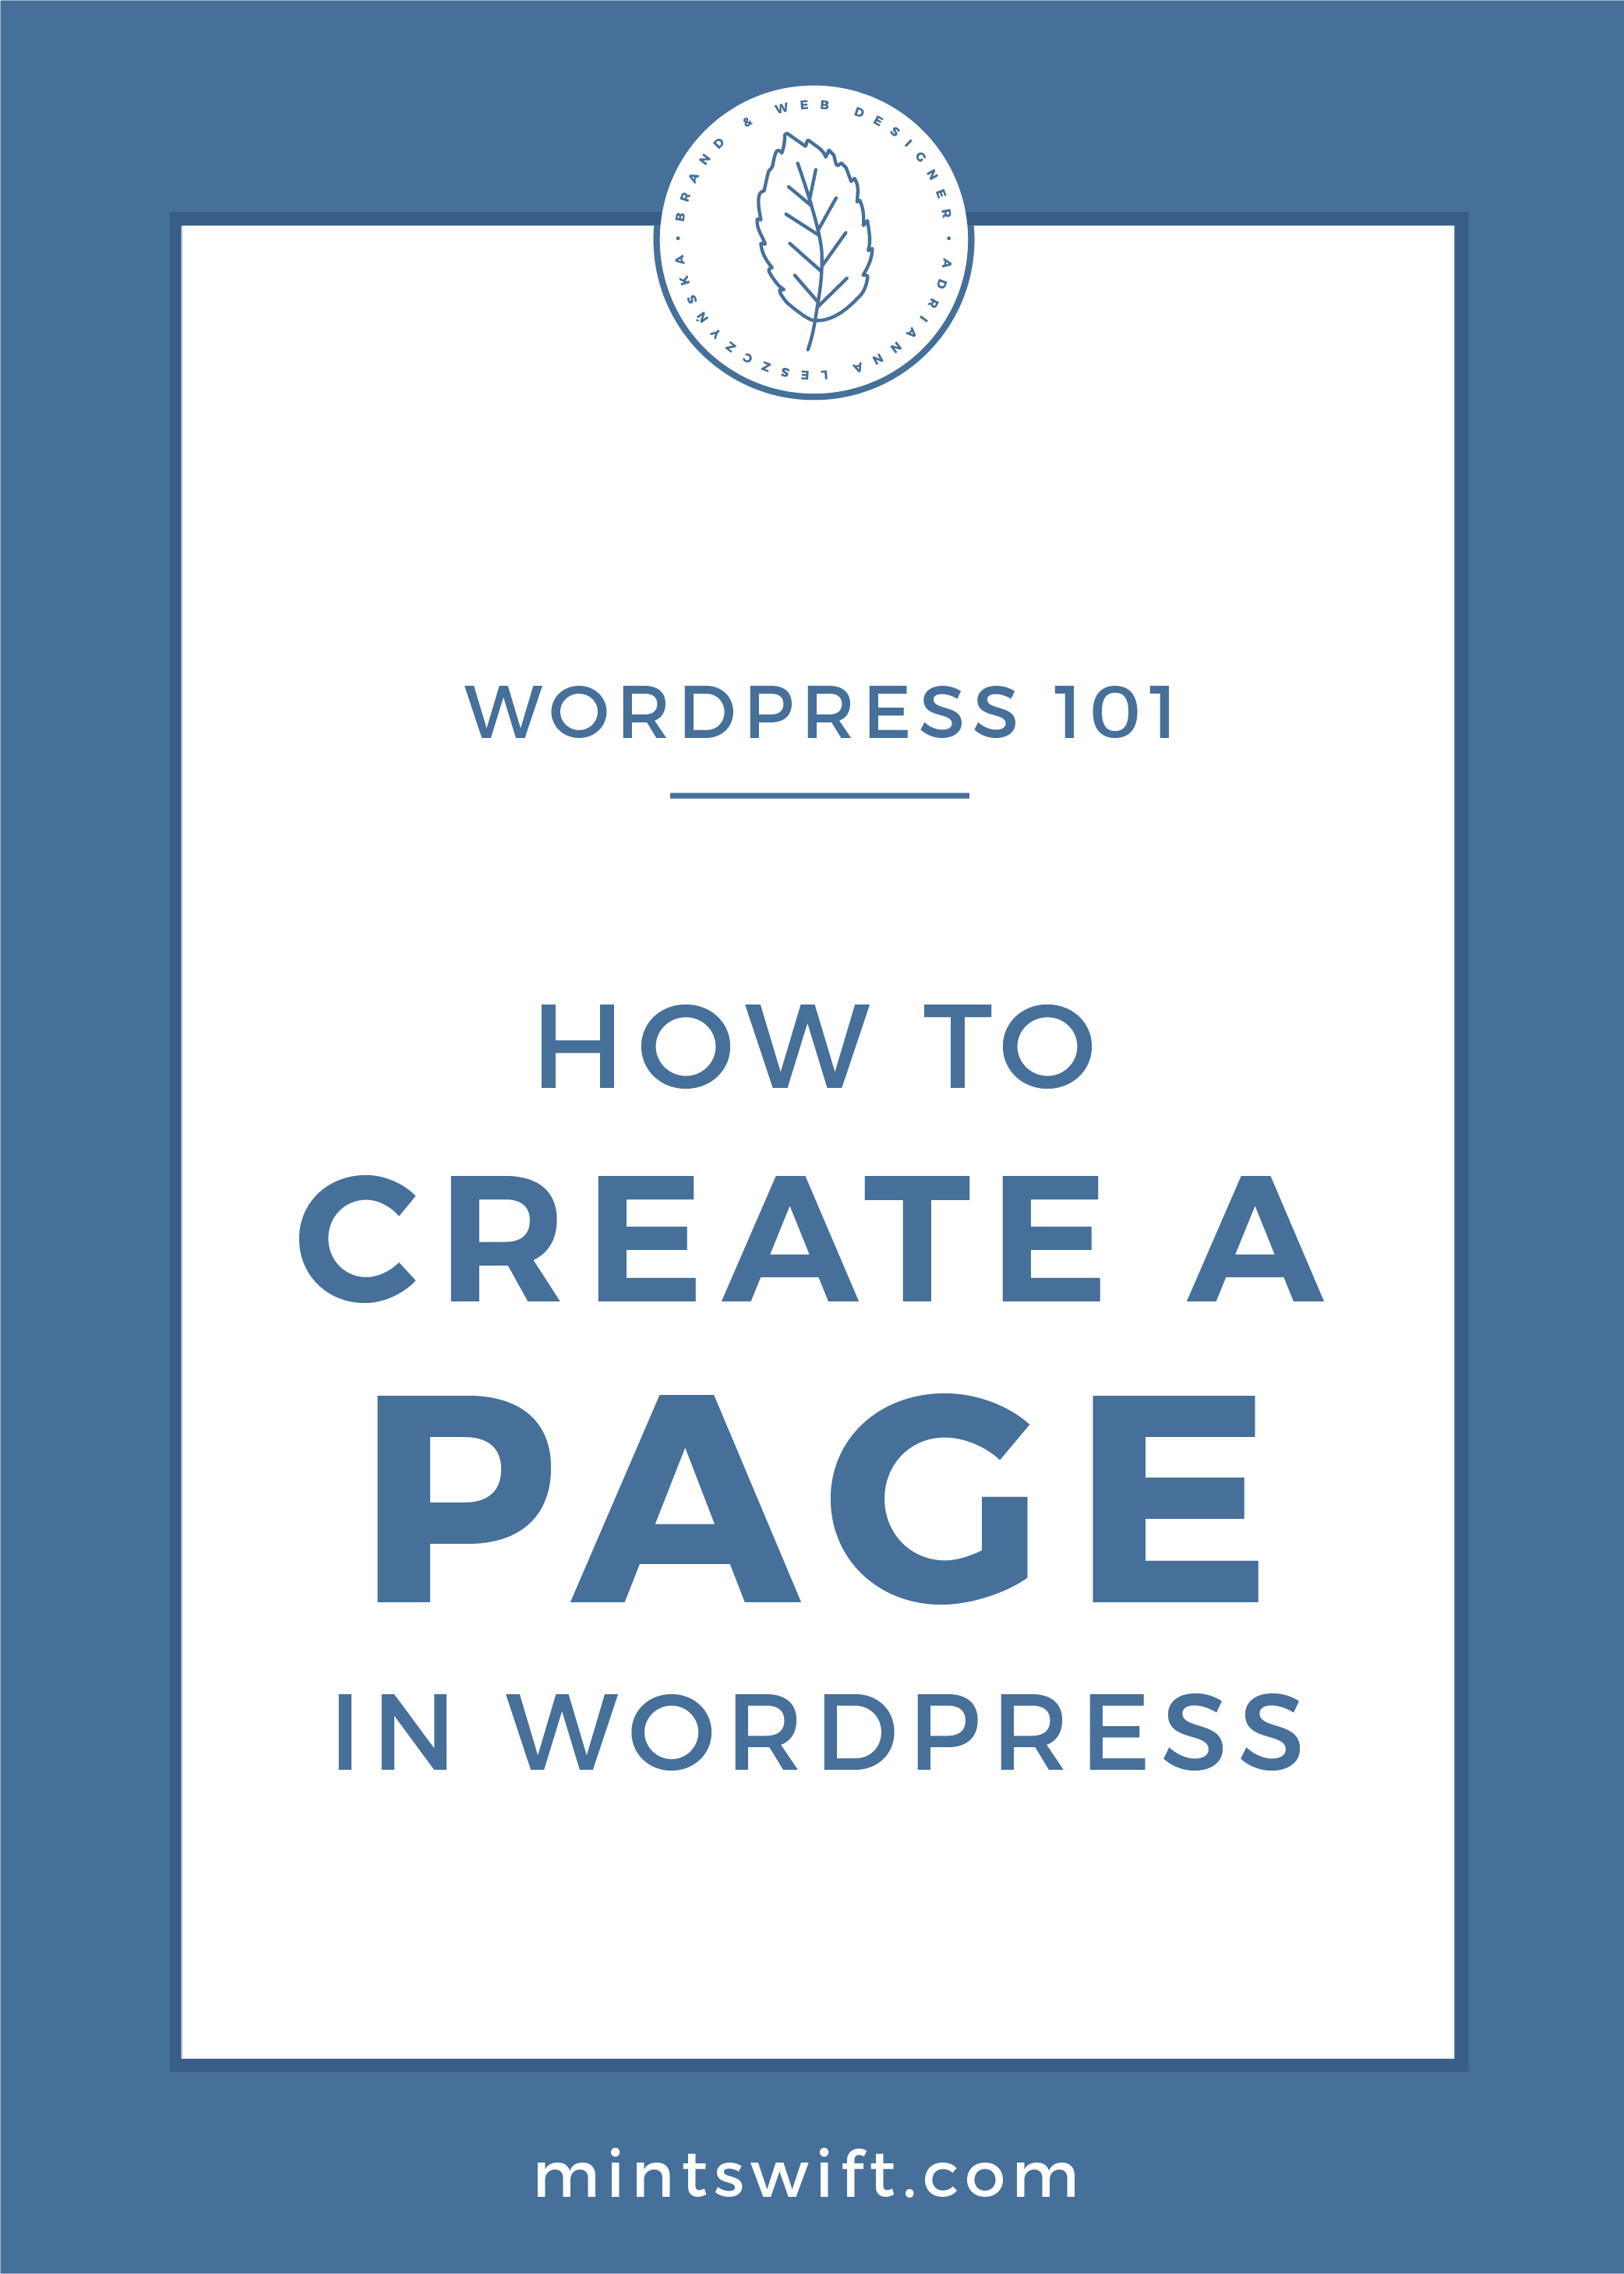 How to Create a Page in WordPress by MintSwift